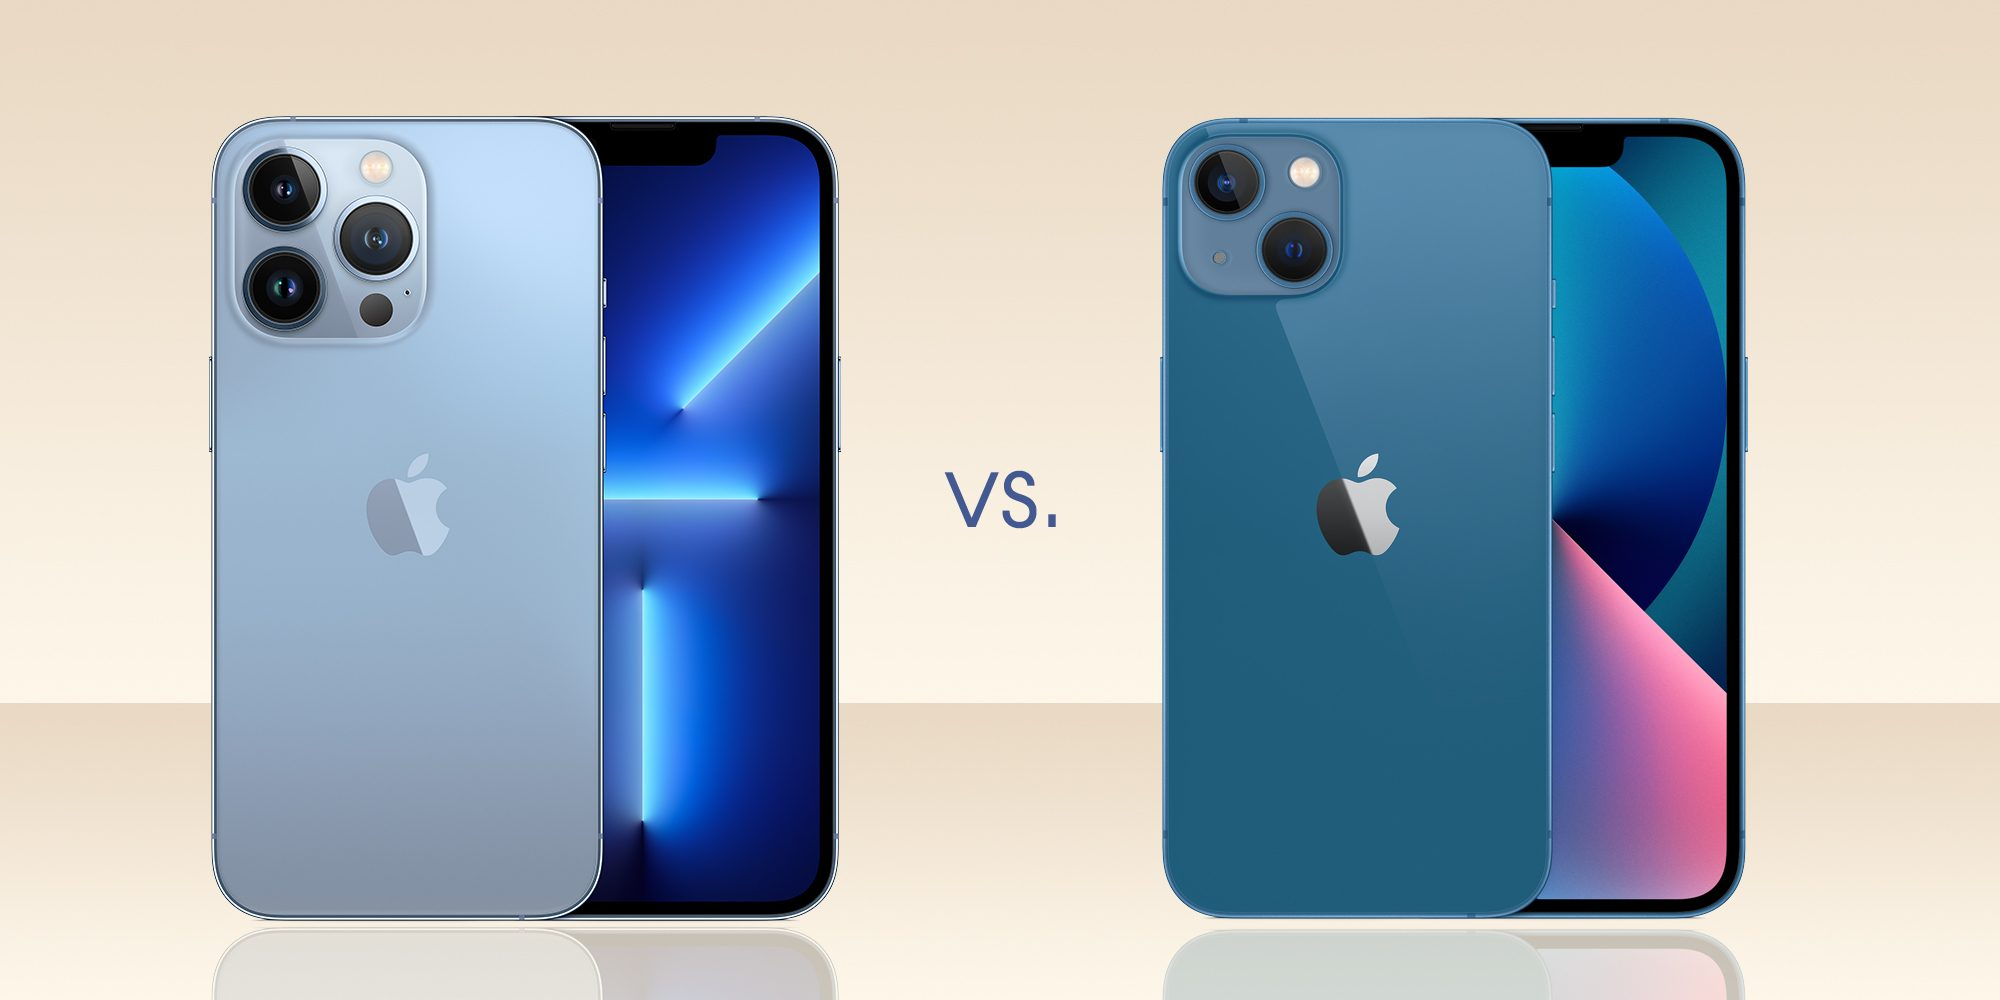 ❤ iPhone 13 vs. iPhone 13 Pro: Which should you buy?